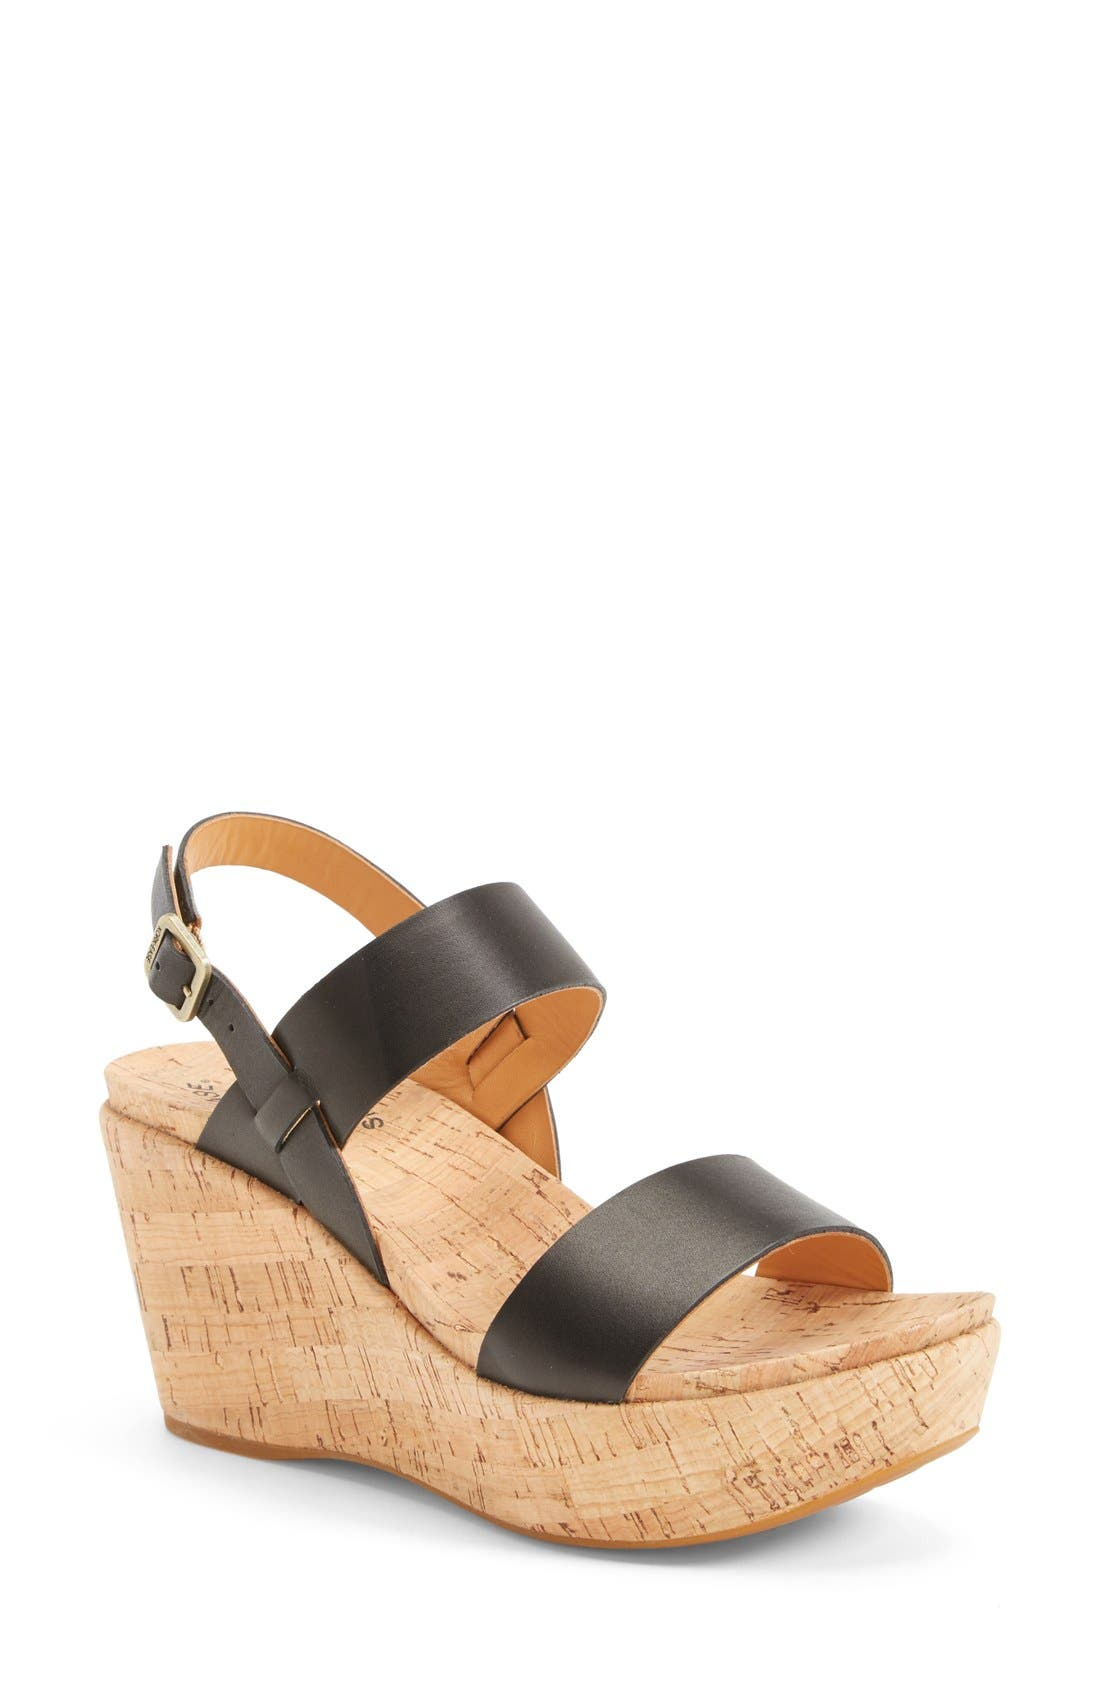 'Austin' Slingback Wedge Sandal,                         Main,                         color, 001